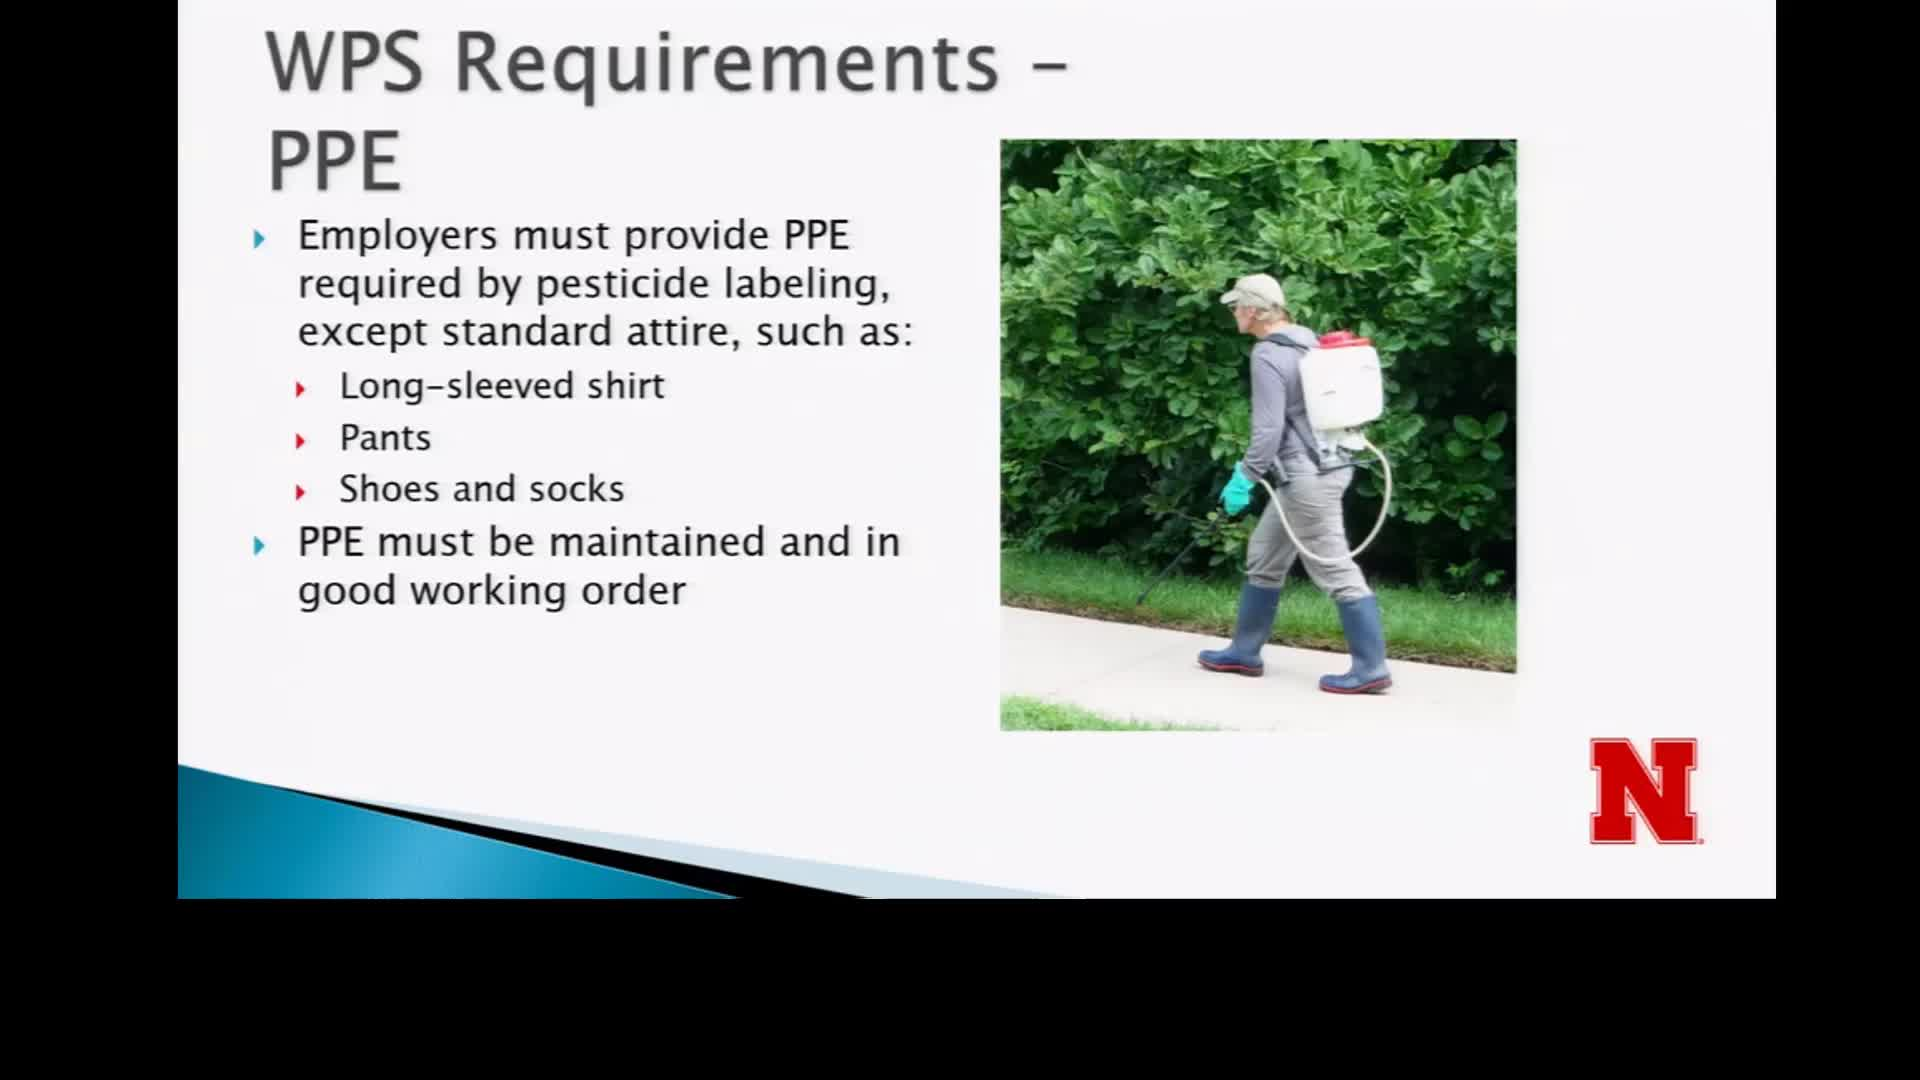 Worker Protection Standard Requirements for PPE